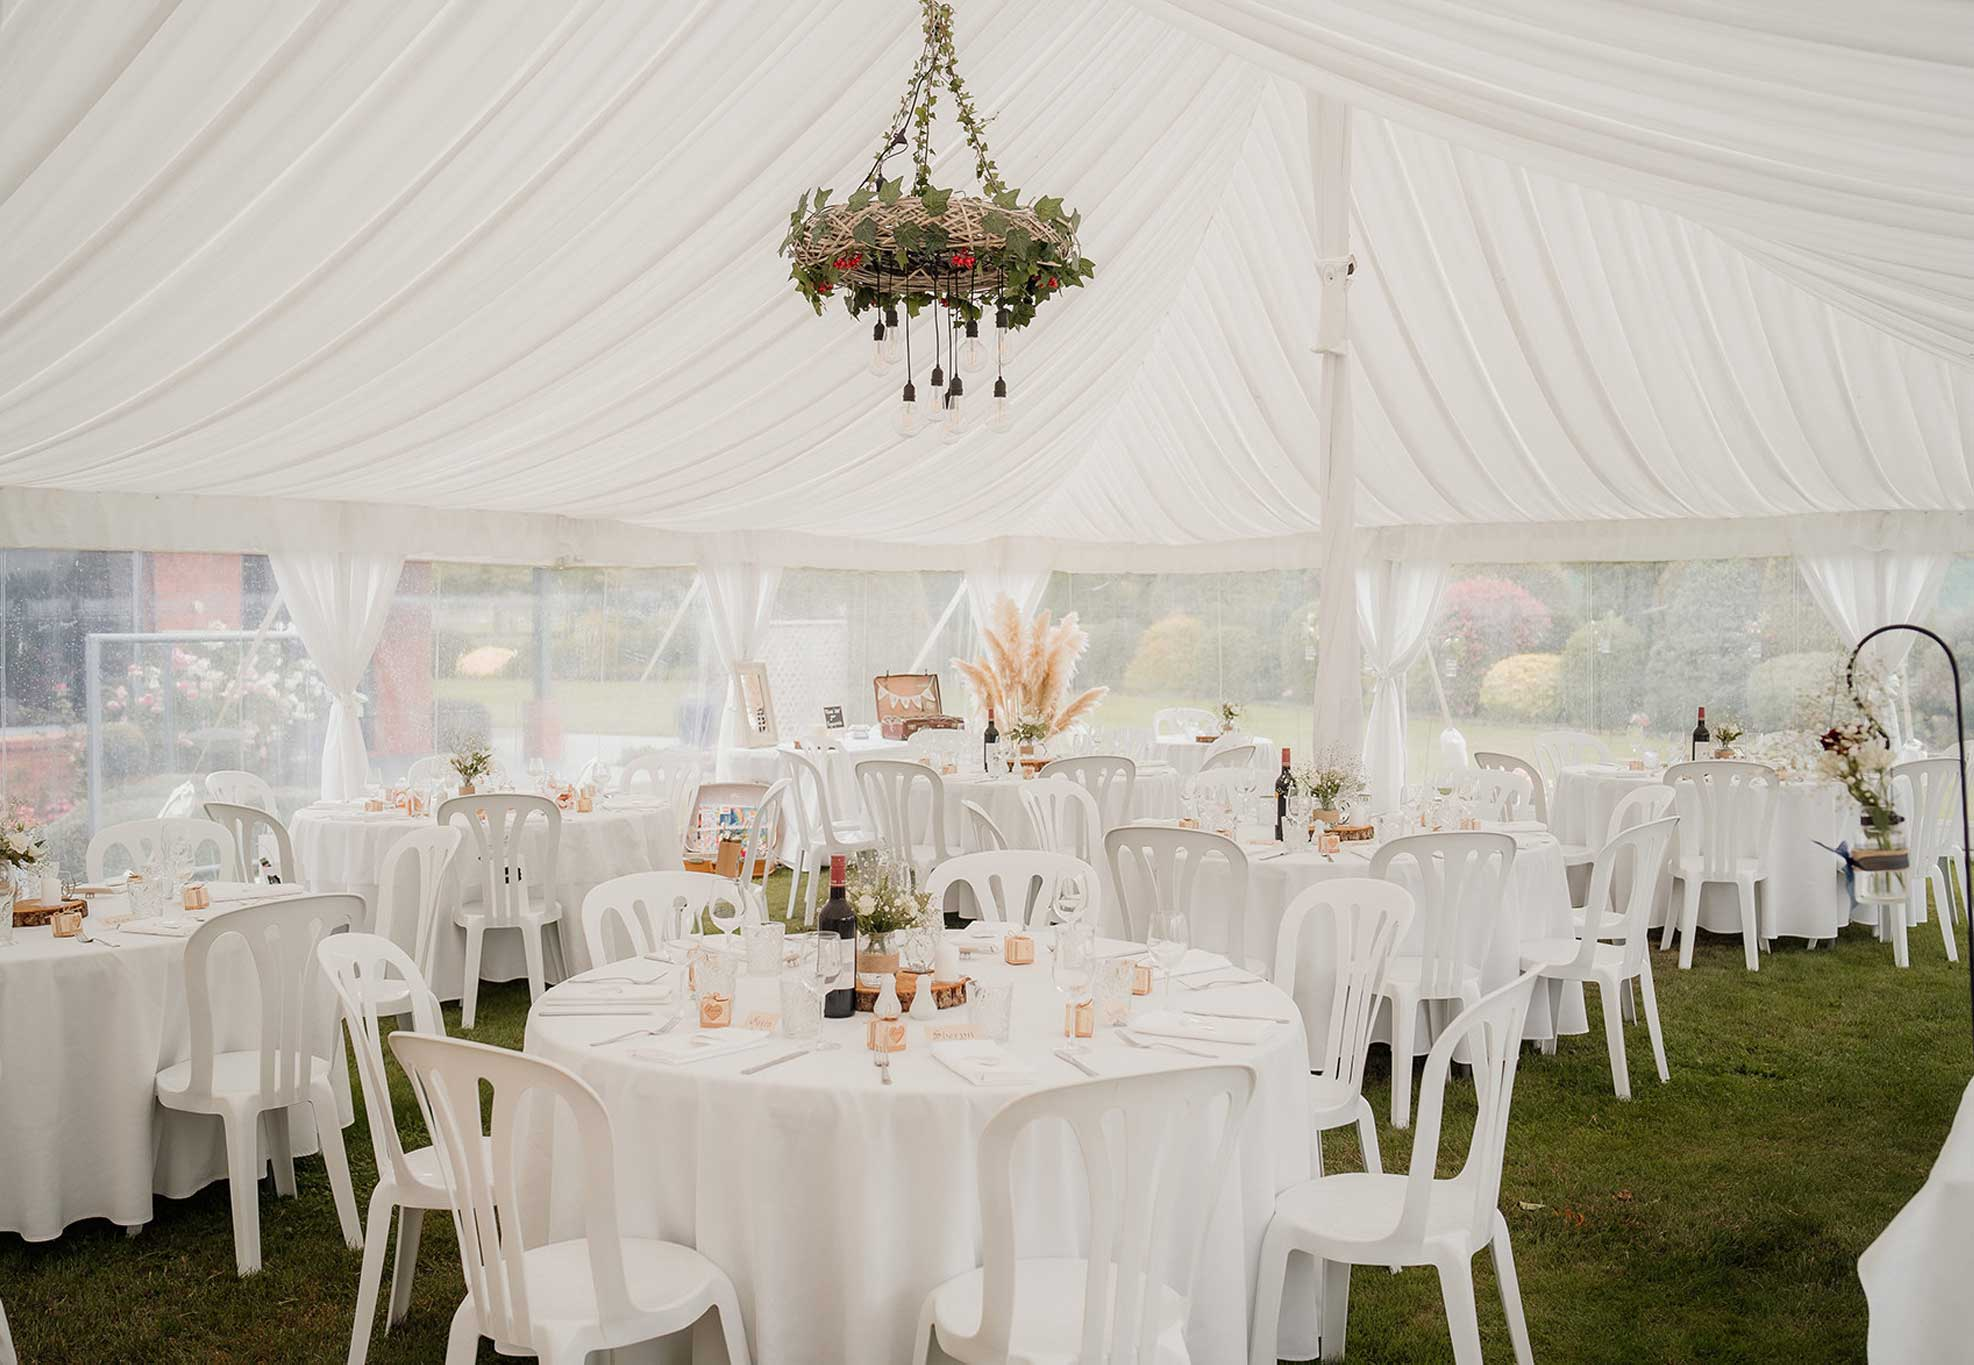 silk-estate-marquee-weddings-and-events-styling-and-hire-furniture-chairs-milano